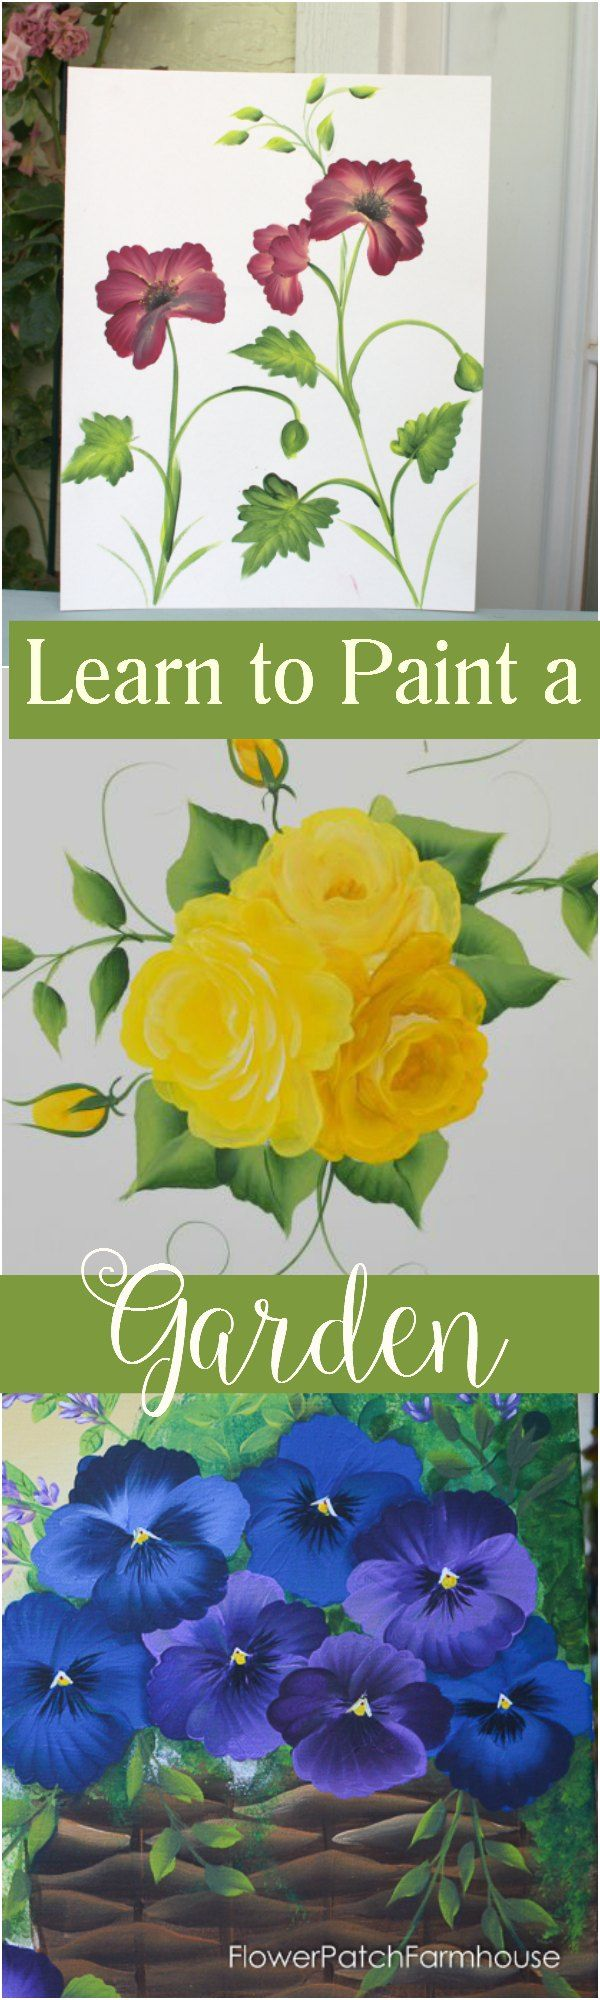 learn how to paint garden flowers free online lessons with videos